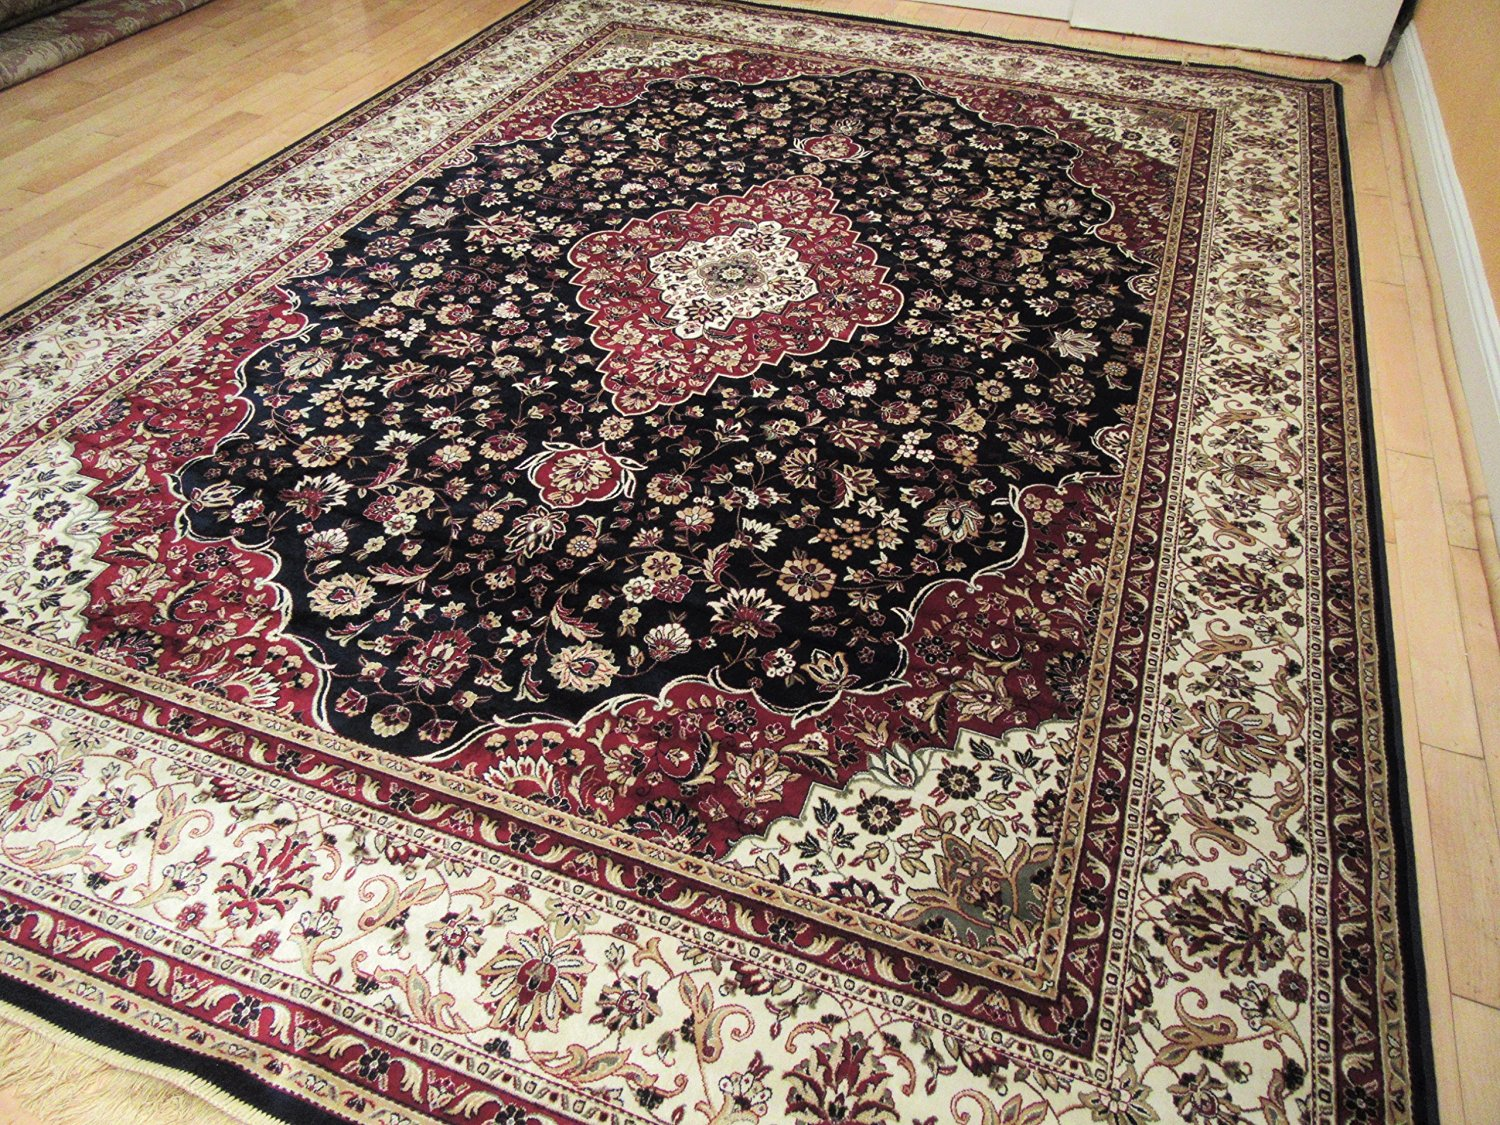 Buy Large Luxury Silk Traditional Rug For Living Room Navy Red